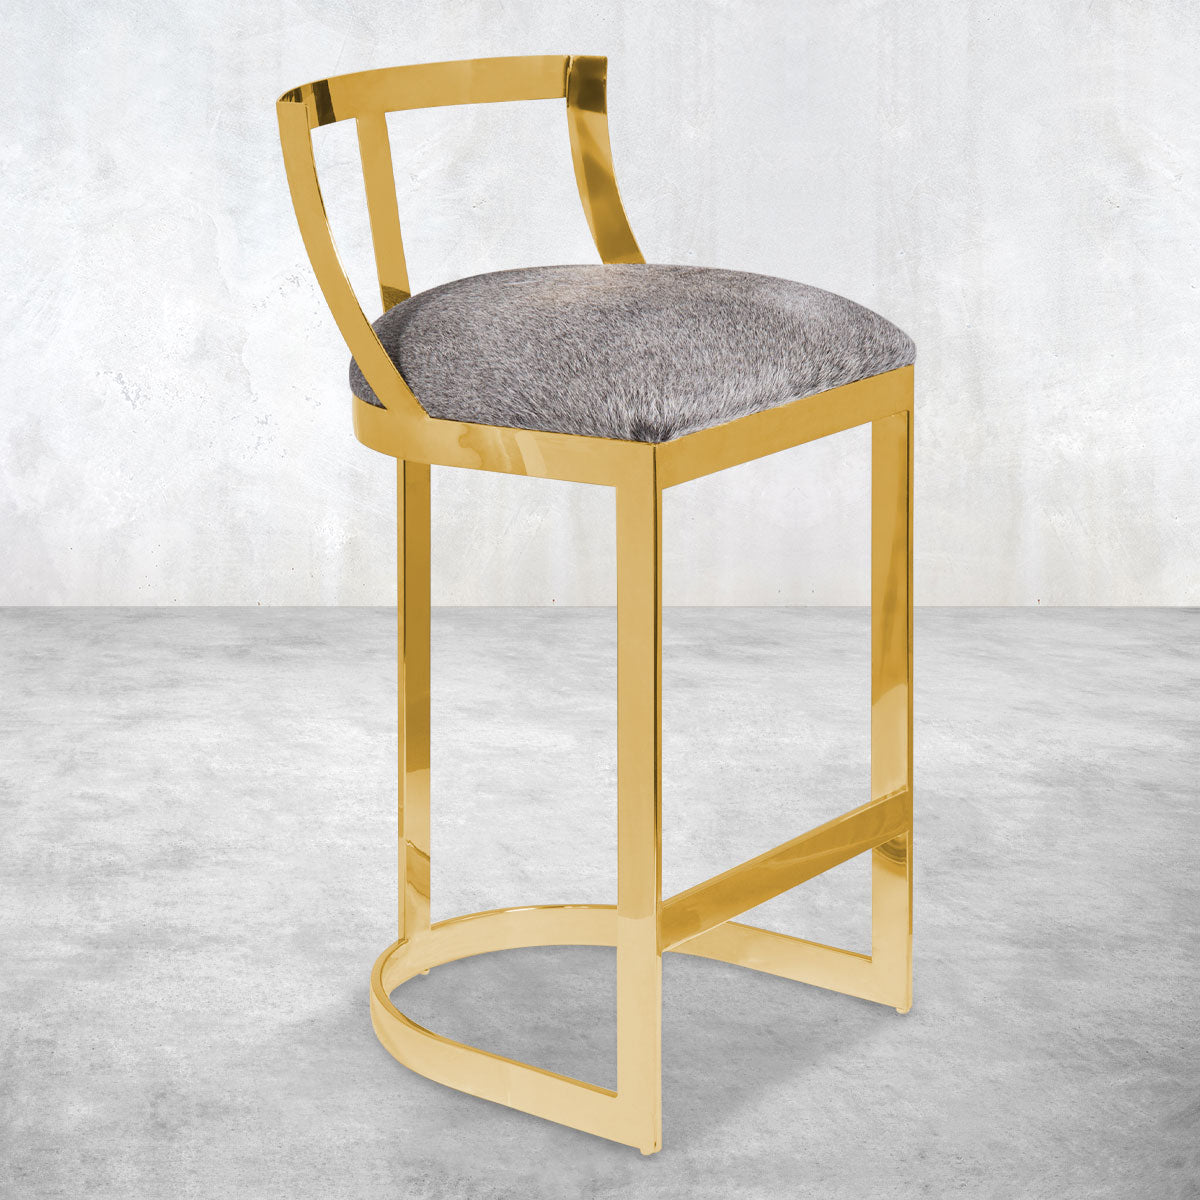 Polished brass bar counter stools with an open, brass framed back, a U-shape rounded base and plush gray upholstered seat.